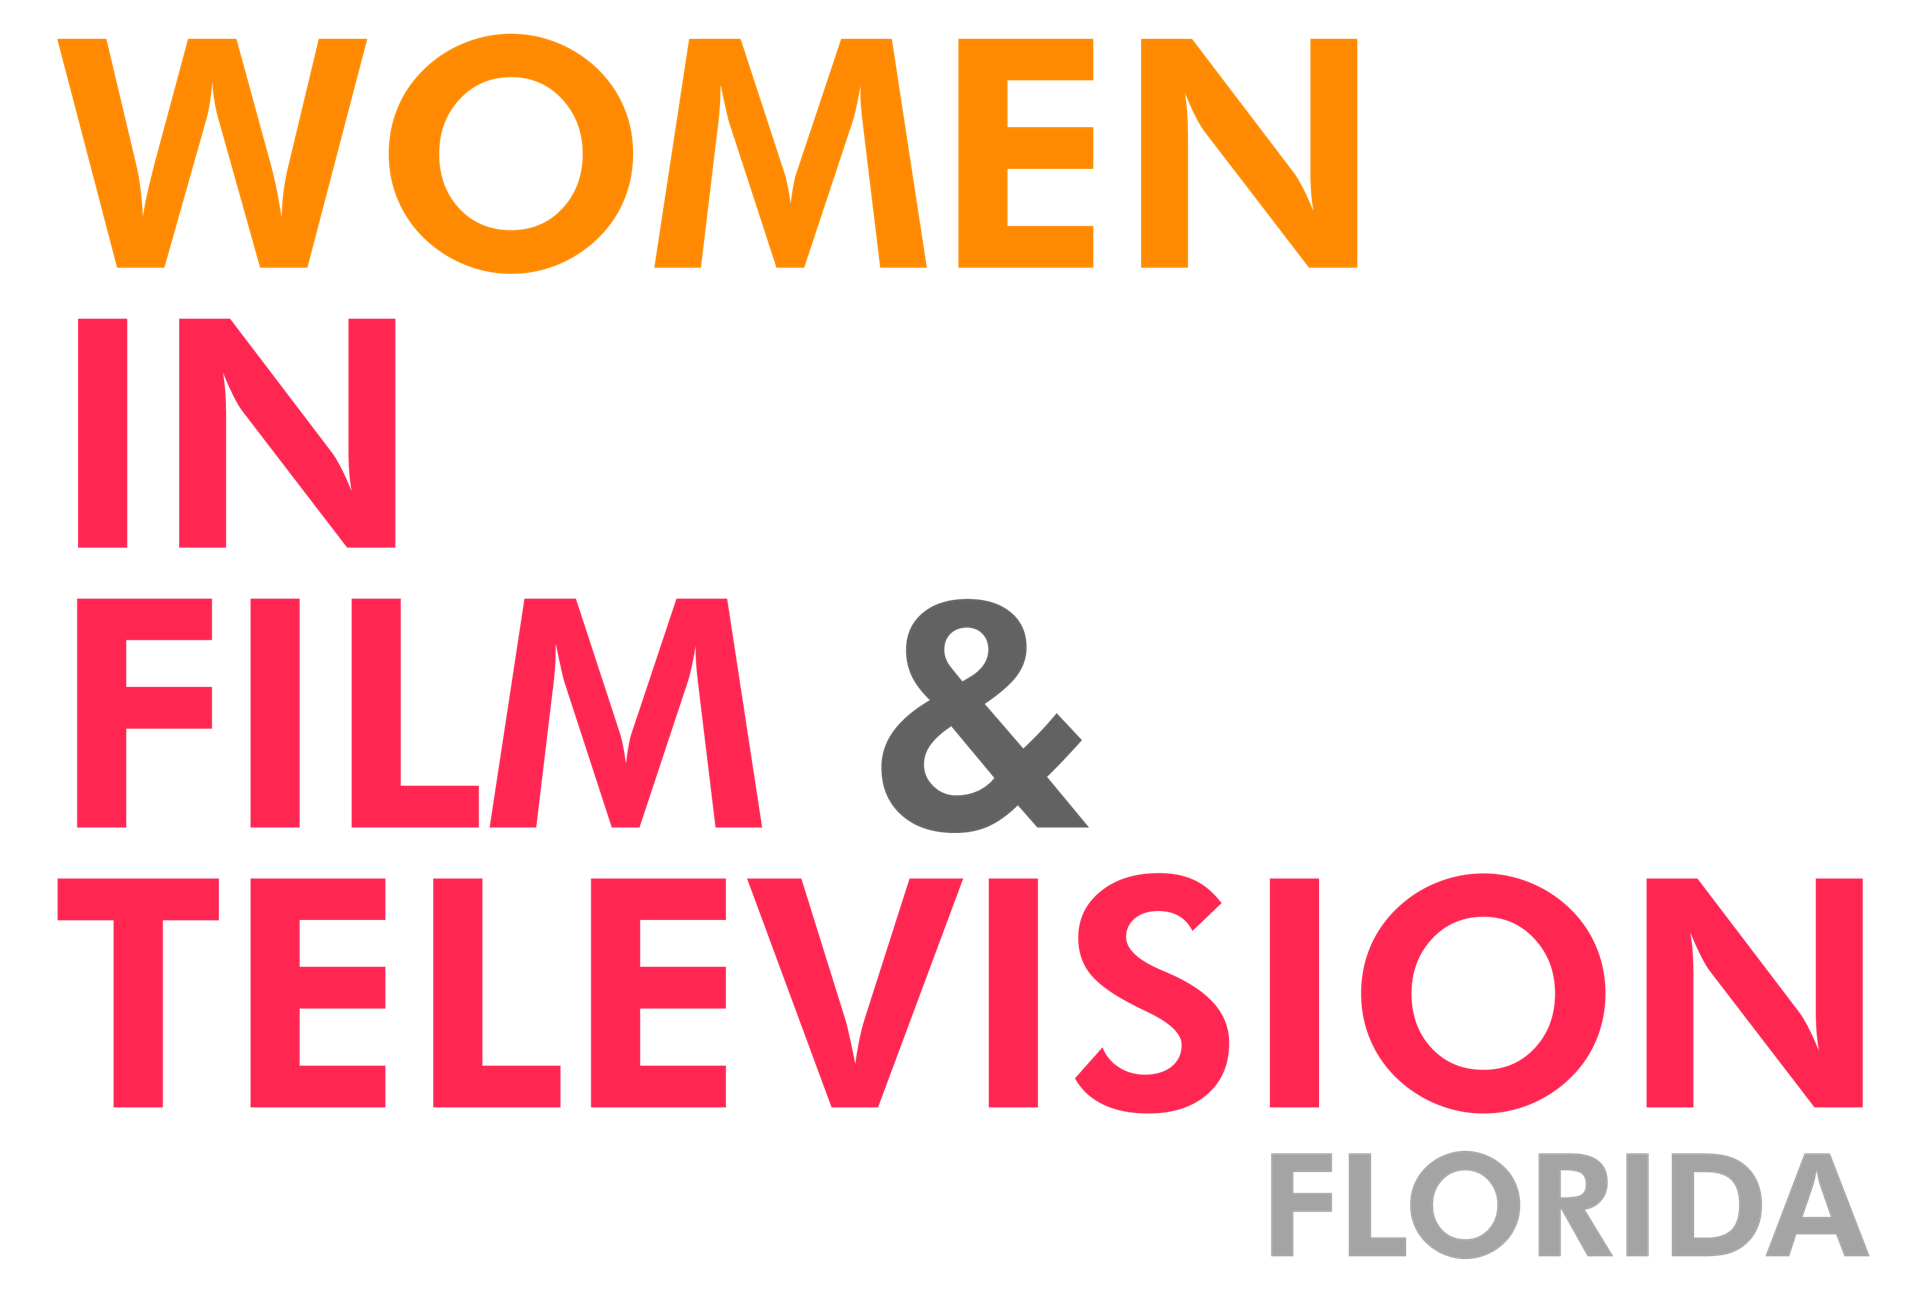 women in Film and Television Florida logo